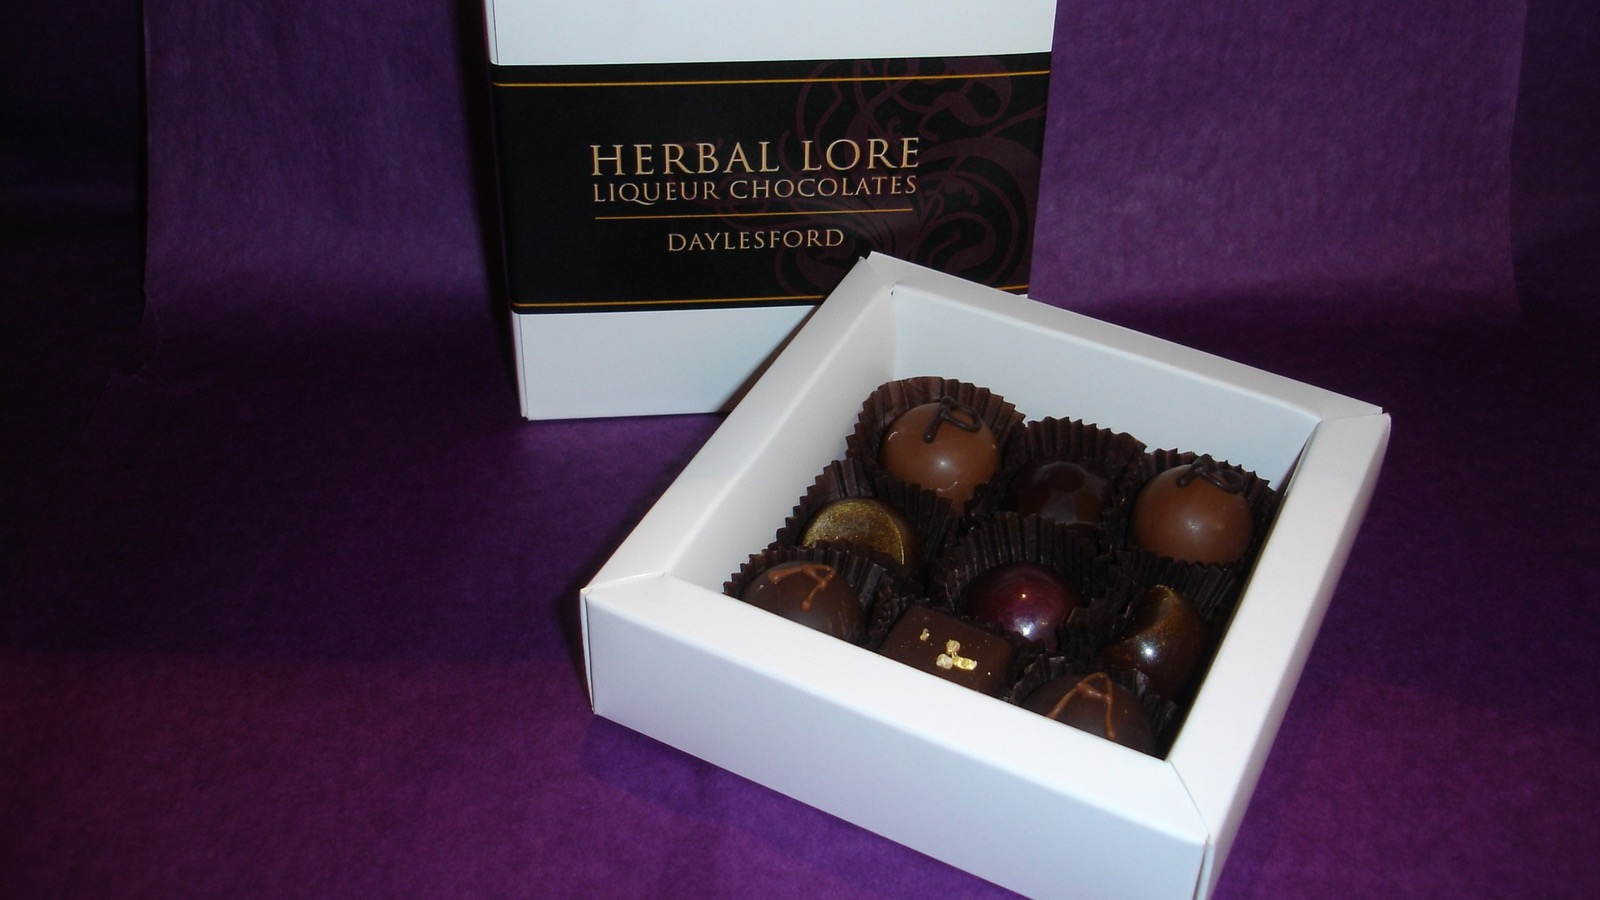 Delicious Liqueur Chocolates